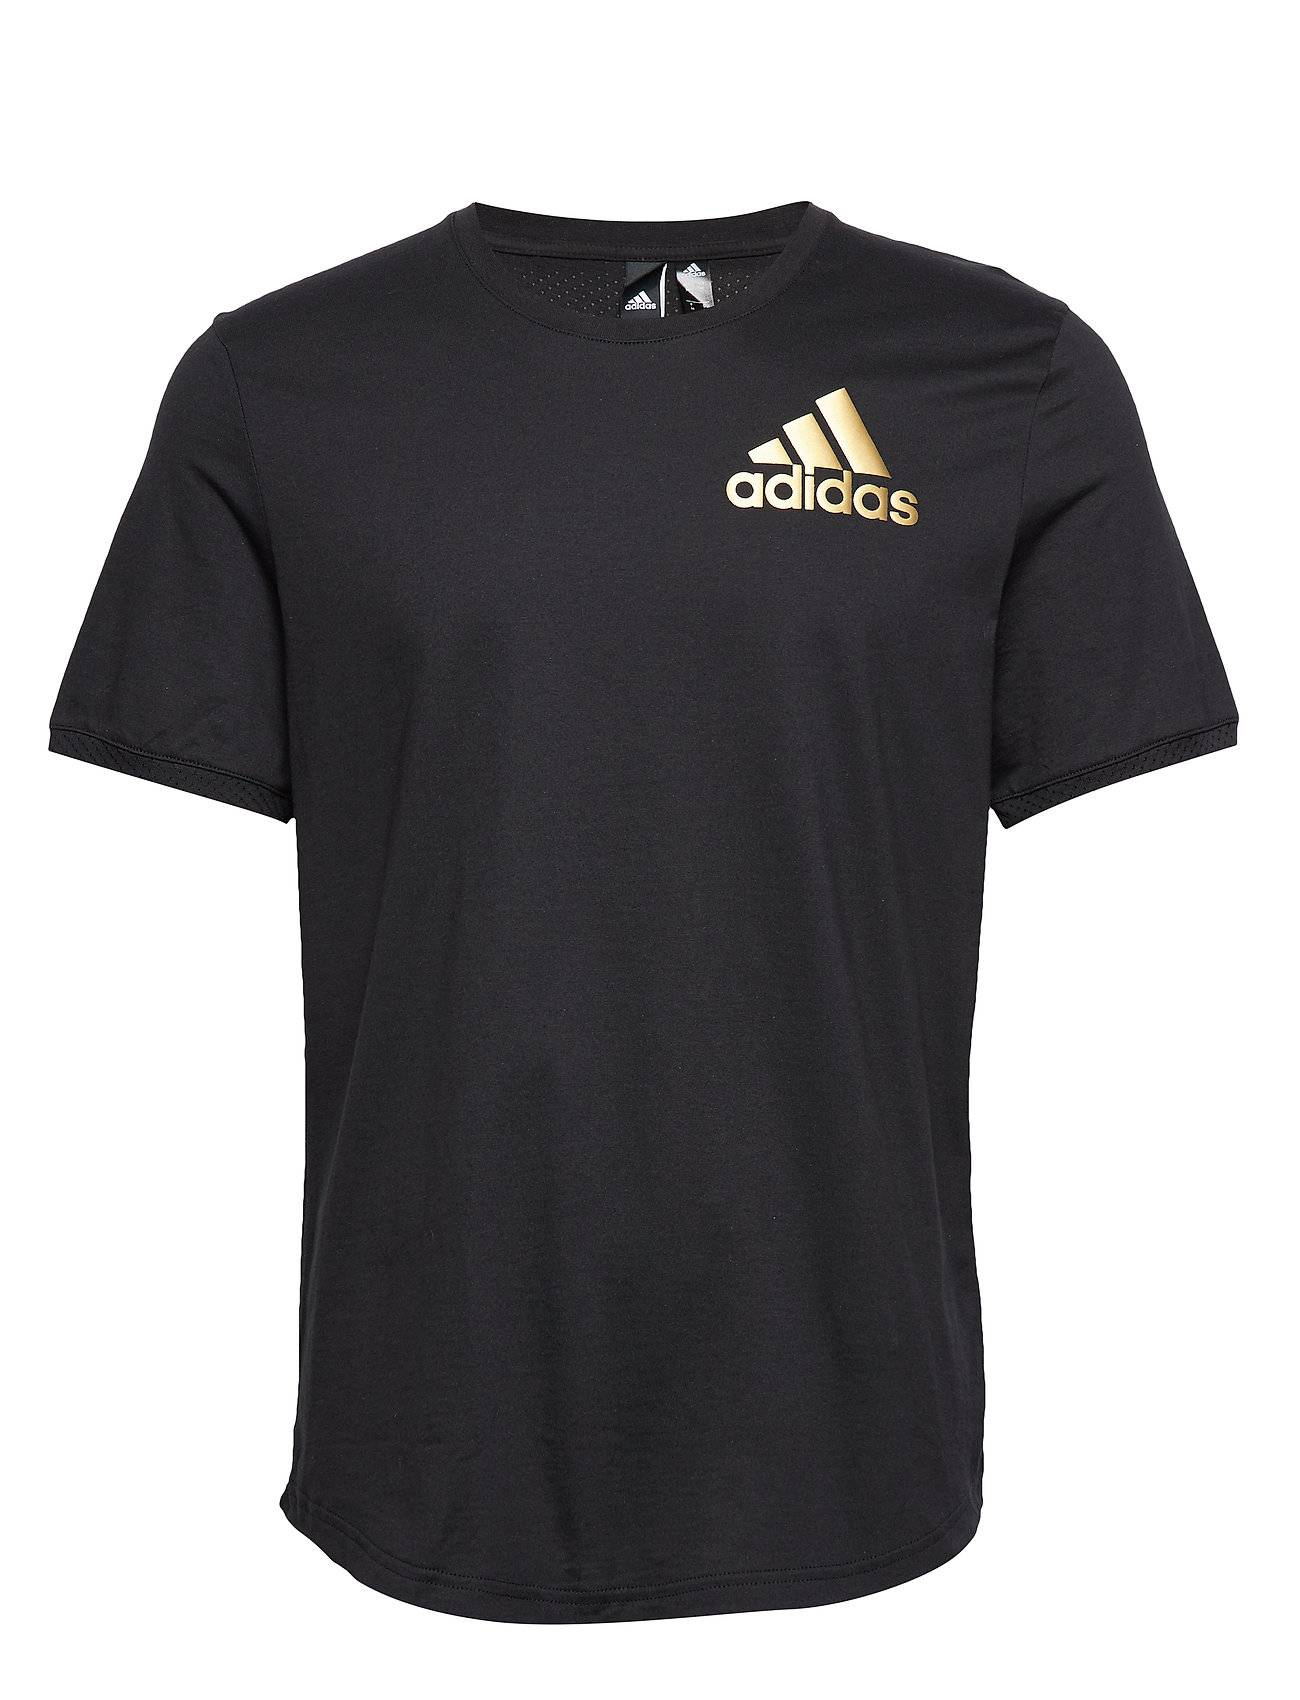 Image of adidas Performance M Sid Tee Ct T-shirts Short-sleeved Musta Adidas Performance